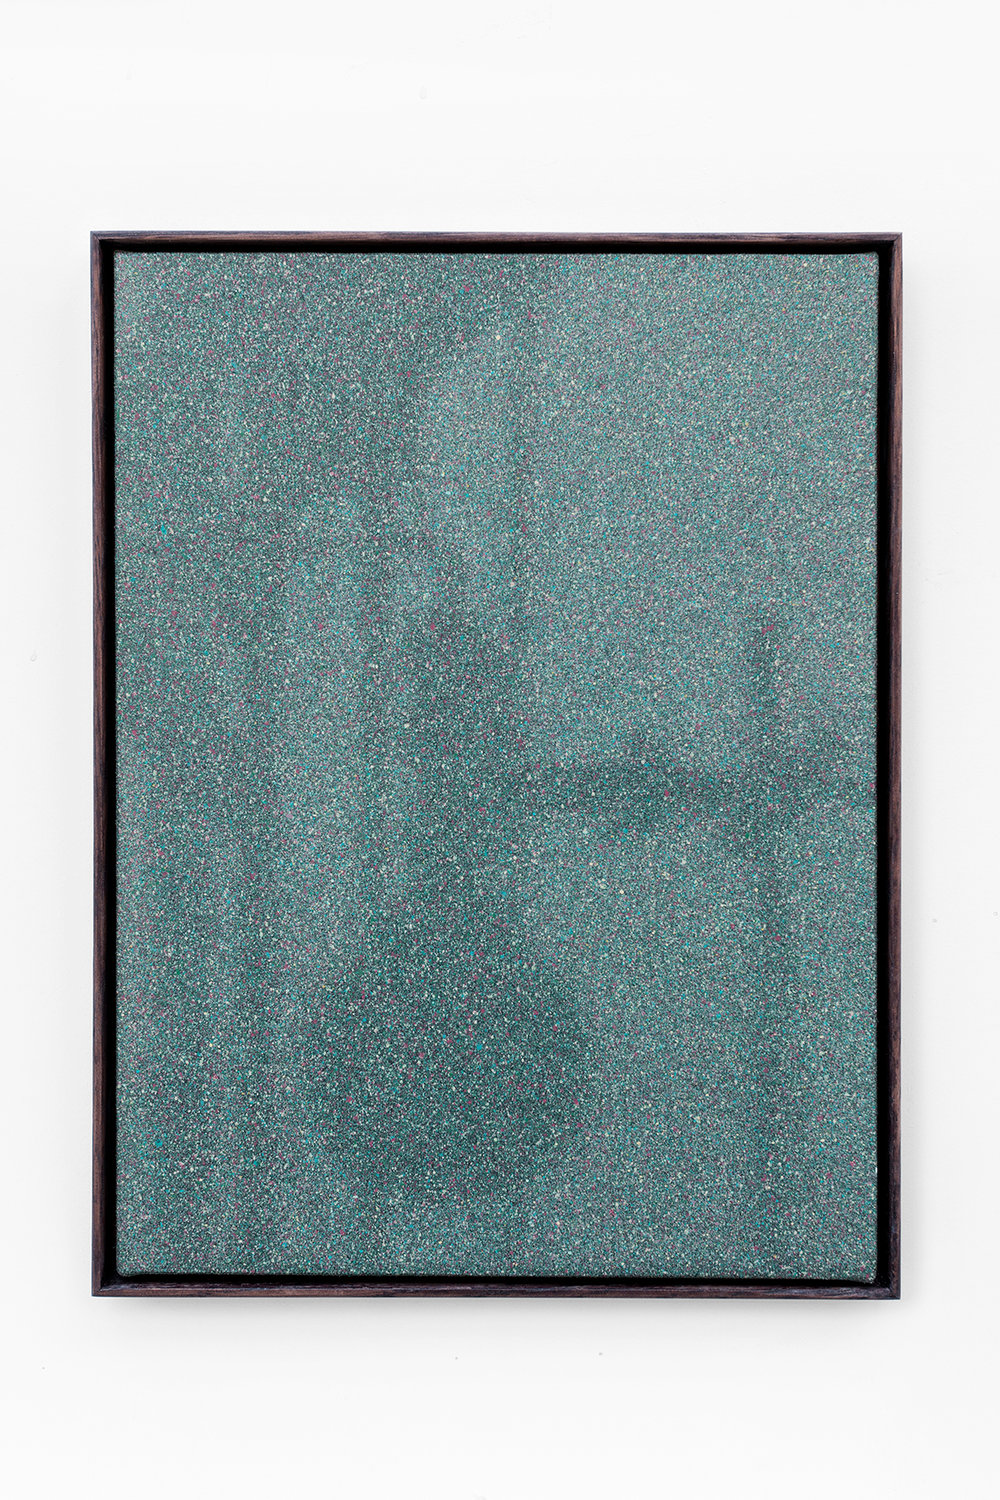 «Shadow Canvas # 42» 2017 Acrylic paint and gesso on canvas over wood panel. 42 x 32 cm with oak frame.